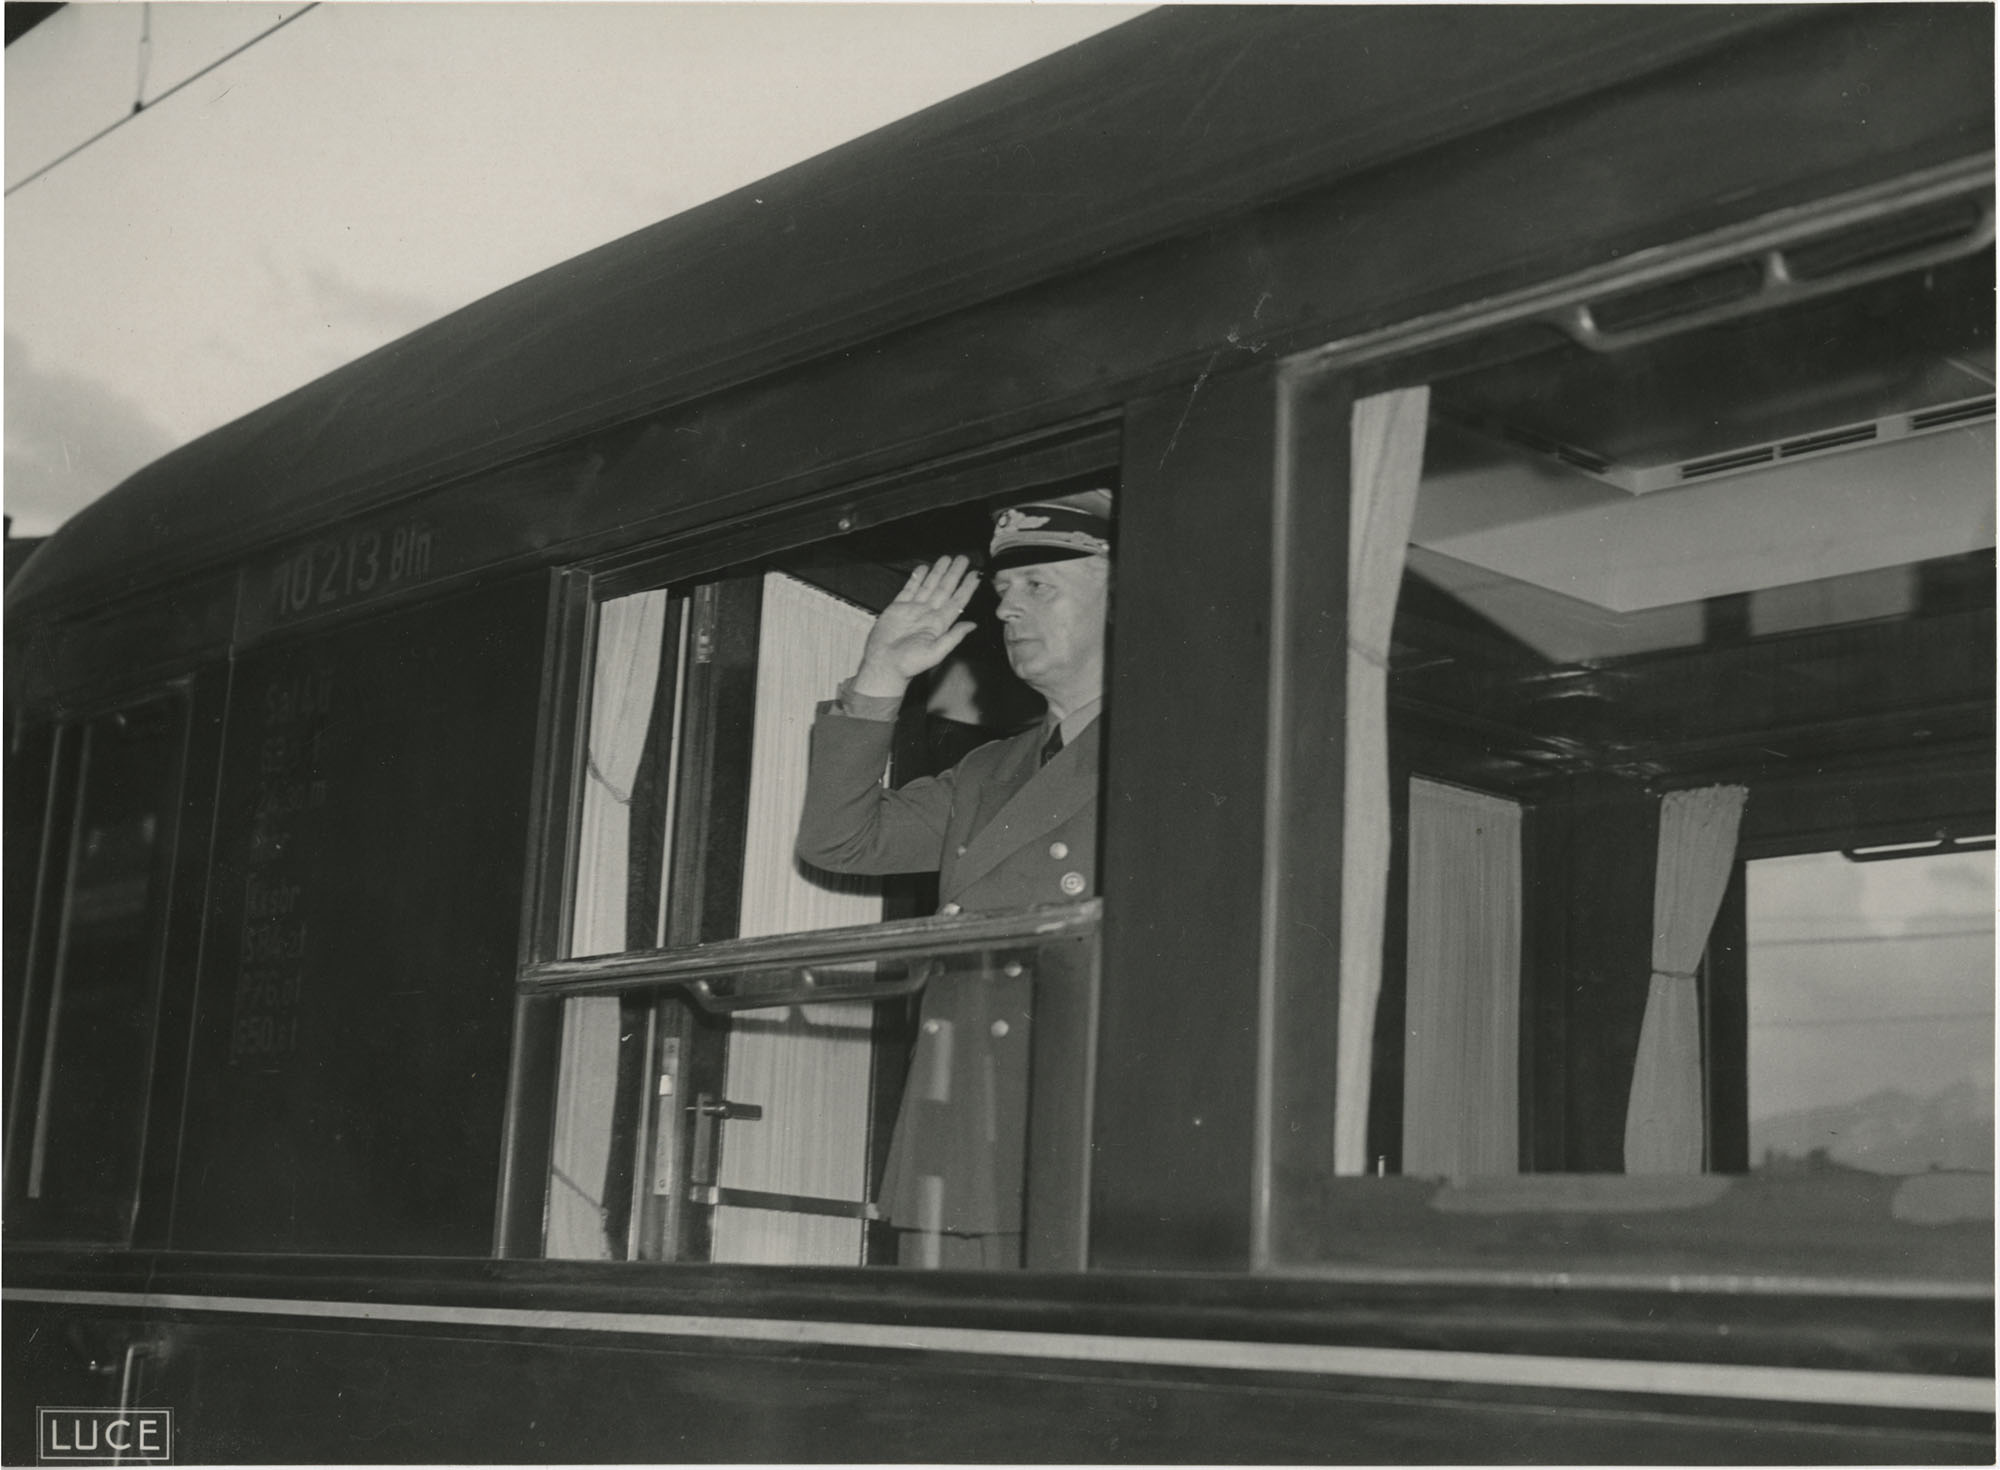 A military official saluting from the window of a train